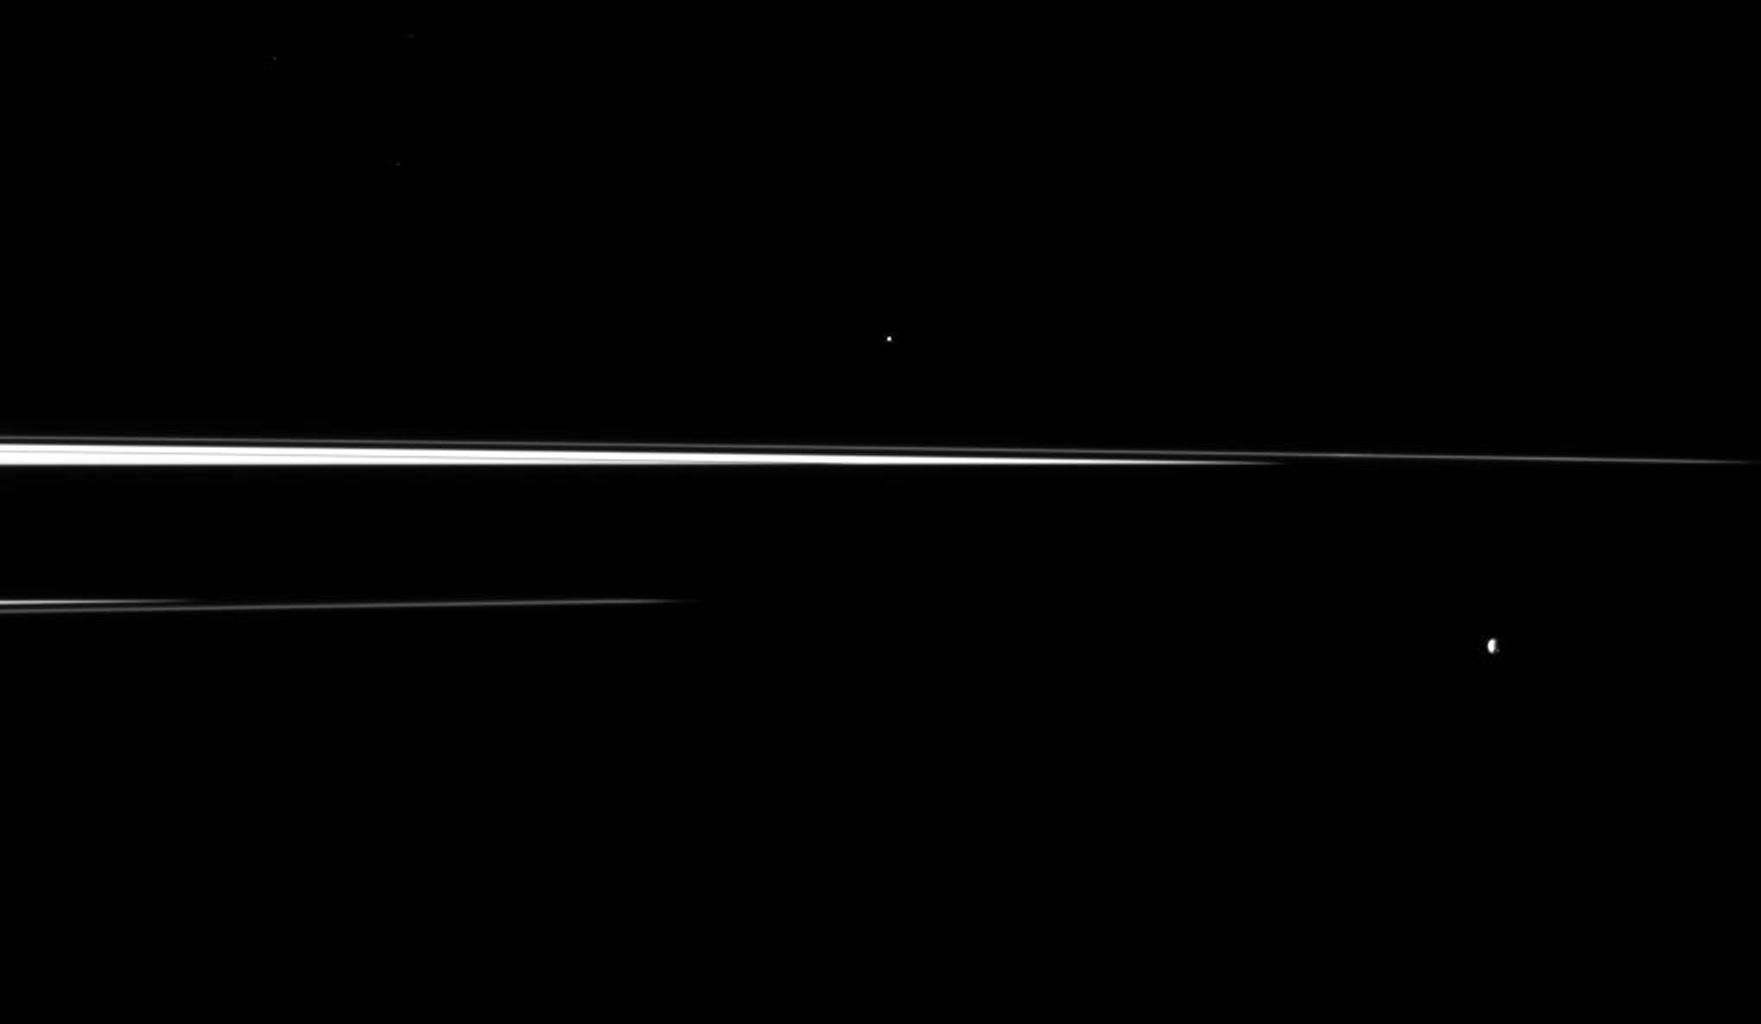 Saturn's shadow interrupts the planet's rings, leaving just thin slivers of the rings visible in this image, which shows a pair of the planet's small moons. Helene is in the center top of the image, Epimetheus is in the lower right.